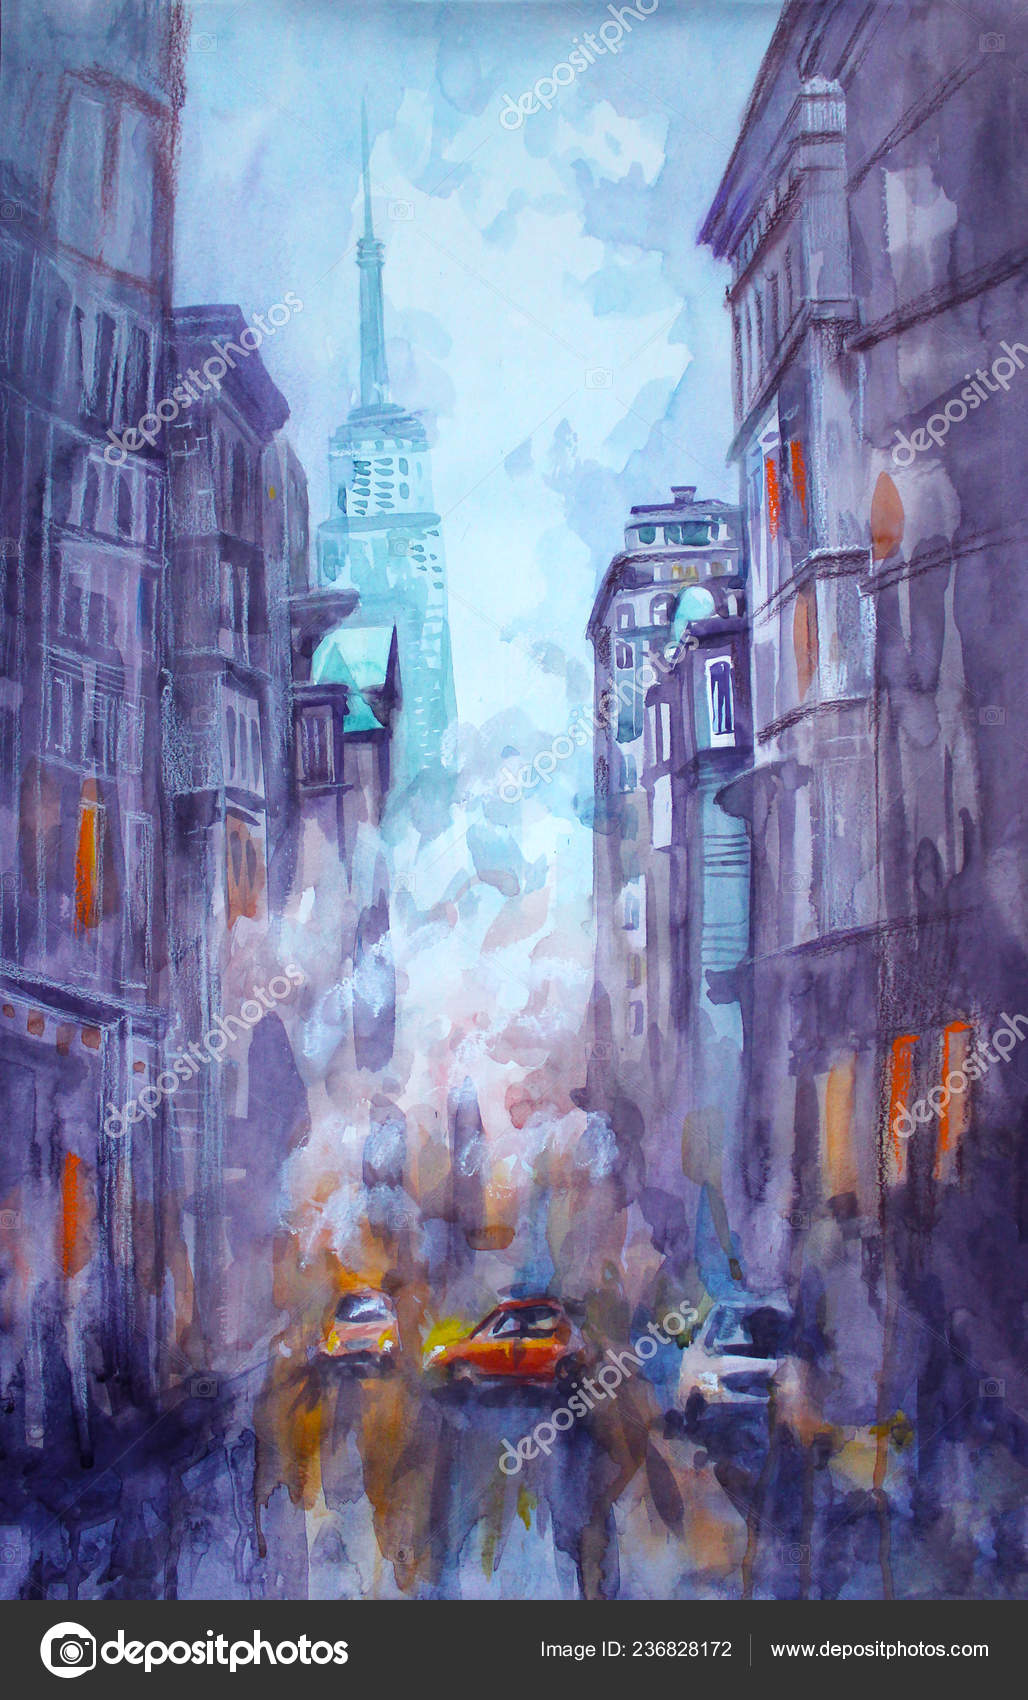 Watercolor And Pastel Painting Of Street View Of New York